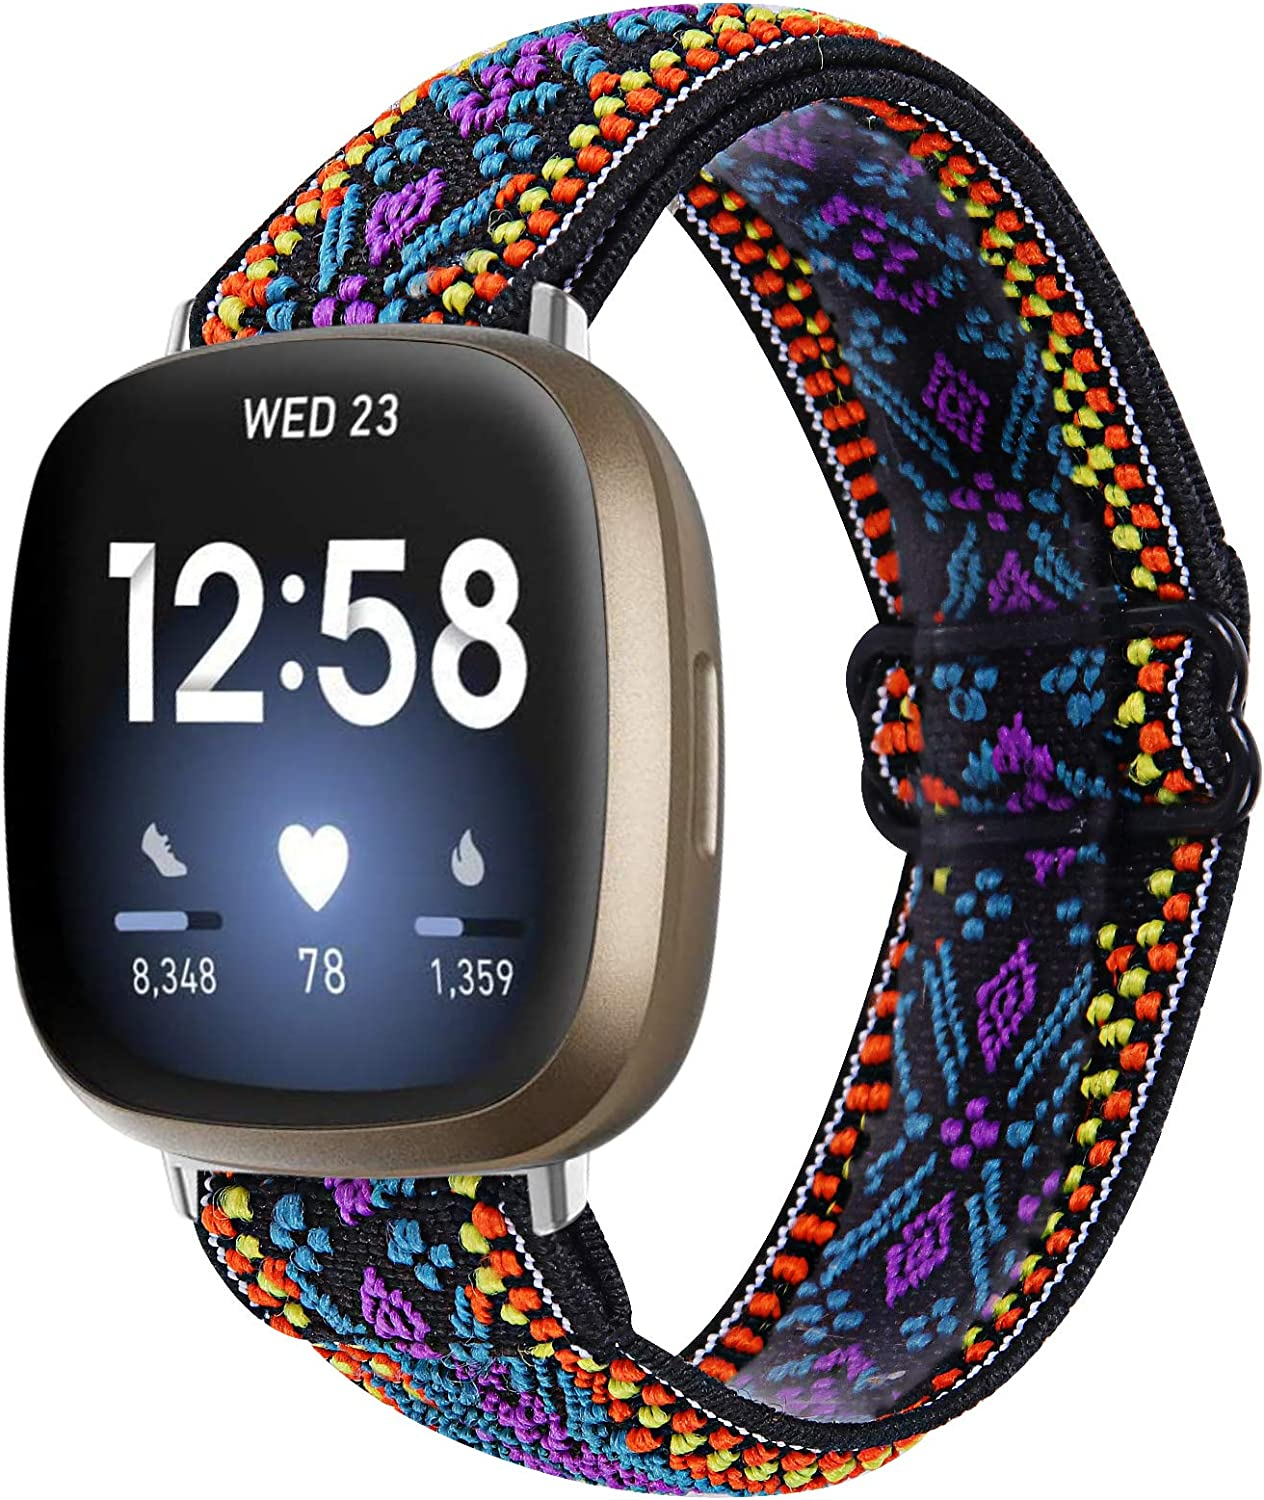 TWBOCV Beauty products Slim Band for Fitbit Versa Ba Pattern Stretch Handmade Limited price 3